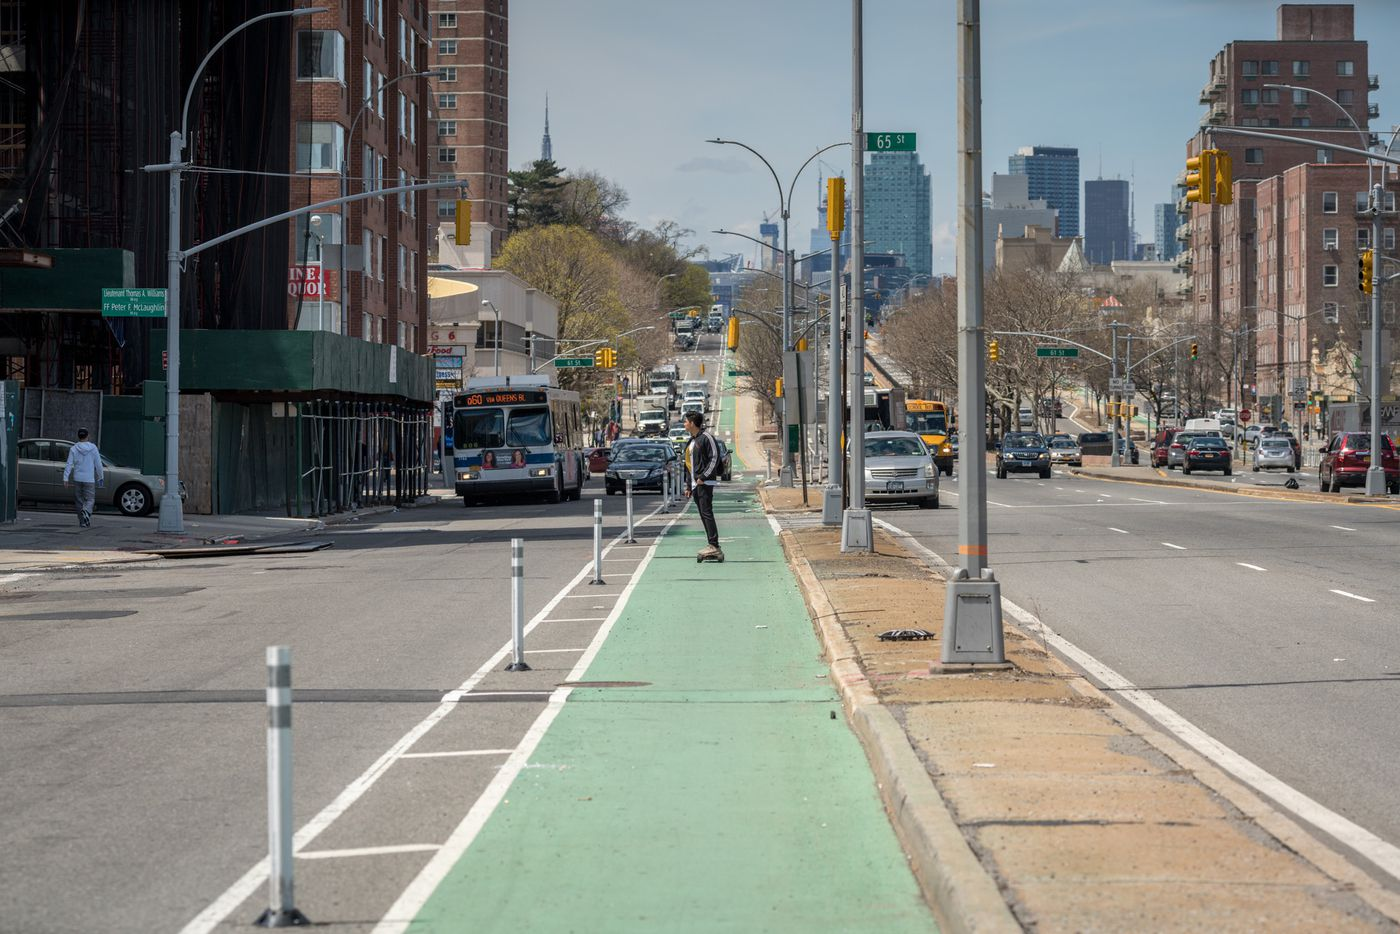 Vision Zero in New York: evaluating the safe streets program